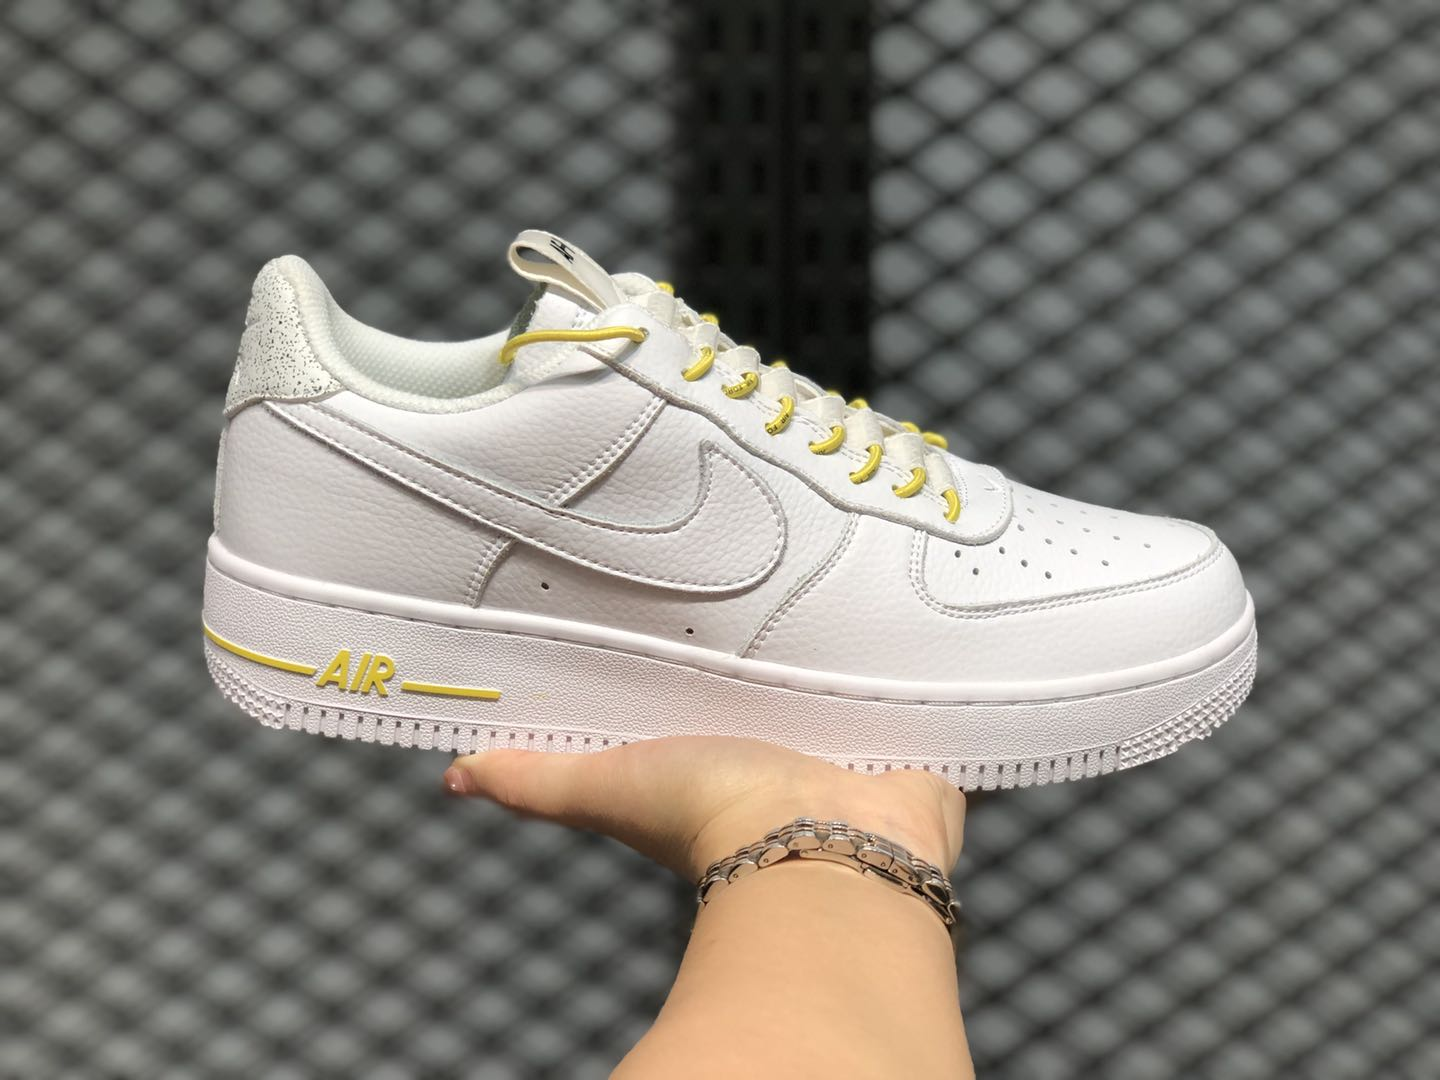 The Latest Nike Air Force 107 Lux White-Chrome Yellow 898889-104